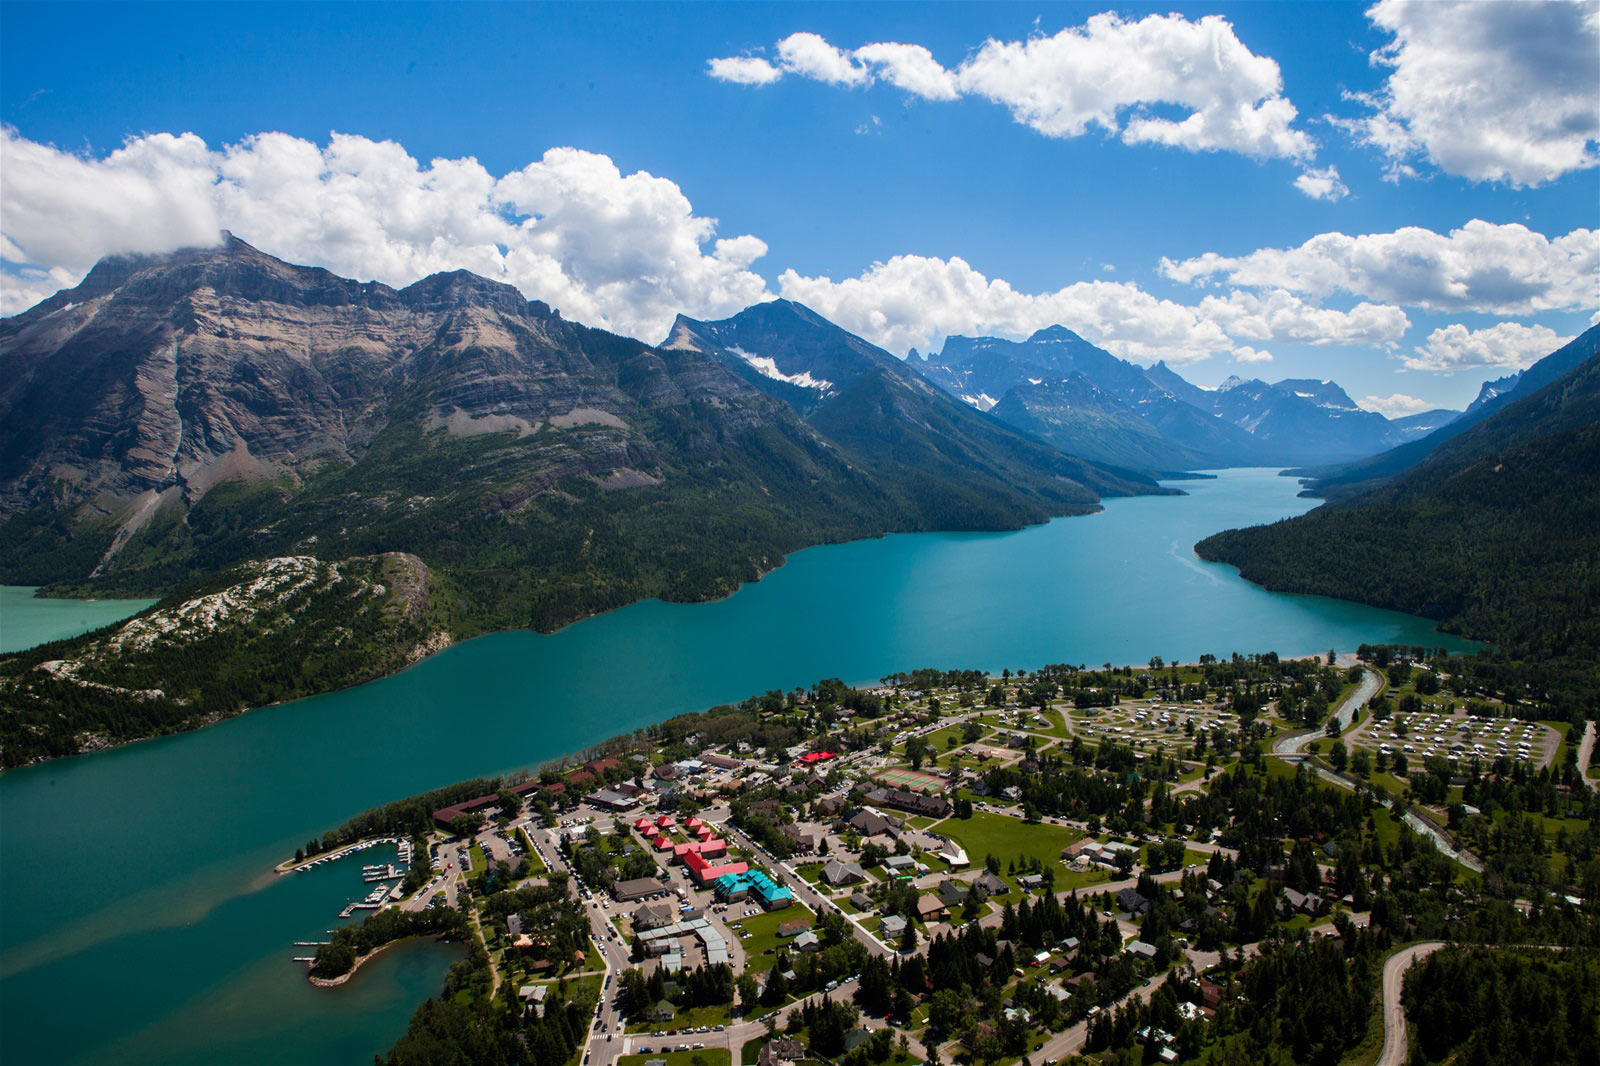 「Waterton Glacier International Peace Park」の画像検索結果